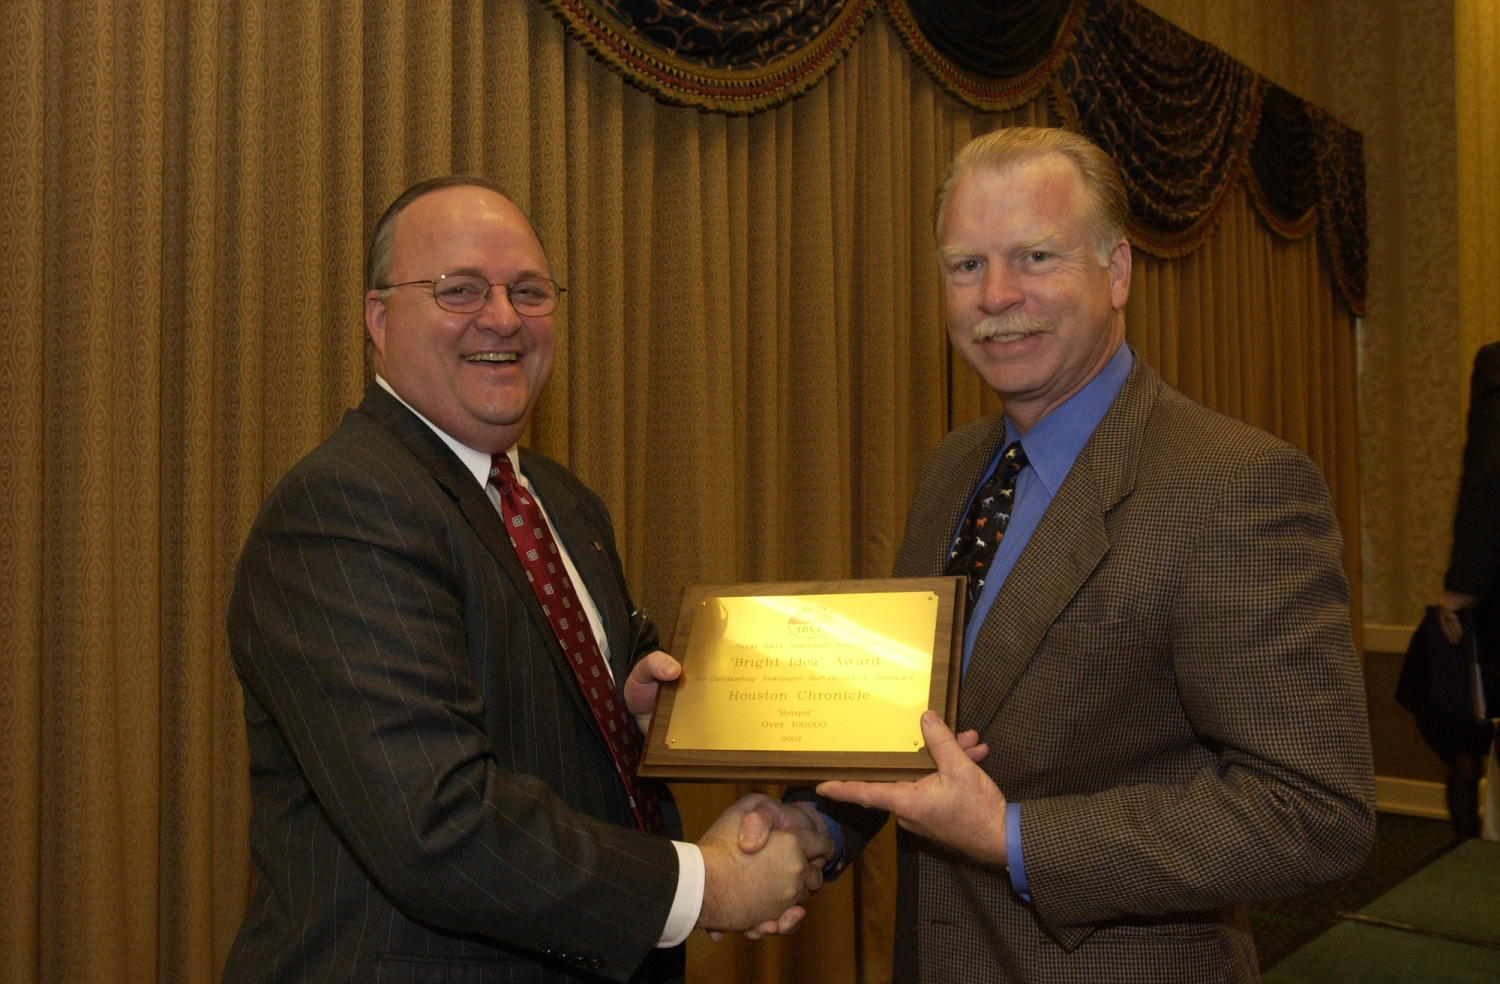 """[Man receiving award at TDNA Conference, 2], Photograph of a Donnis Baggett (right) handing an engraved plaque to an unidentified man who is receiving the award from the 2004 Texas Daily News Association annual conference held in Corpus Christi. The plaque reads, """"TDNA. Texas Daily Newspaper Association. """"Bright Idea"""" Award. For Outstanding Newspaper Self Promotion Campaign. Houston Chronicle. """"Hotspot"""" Over 100,000. 2003"""","""